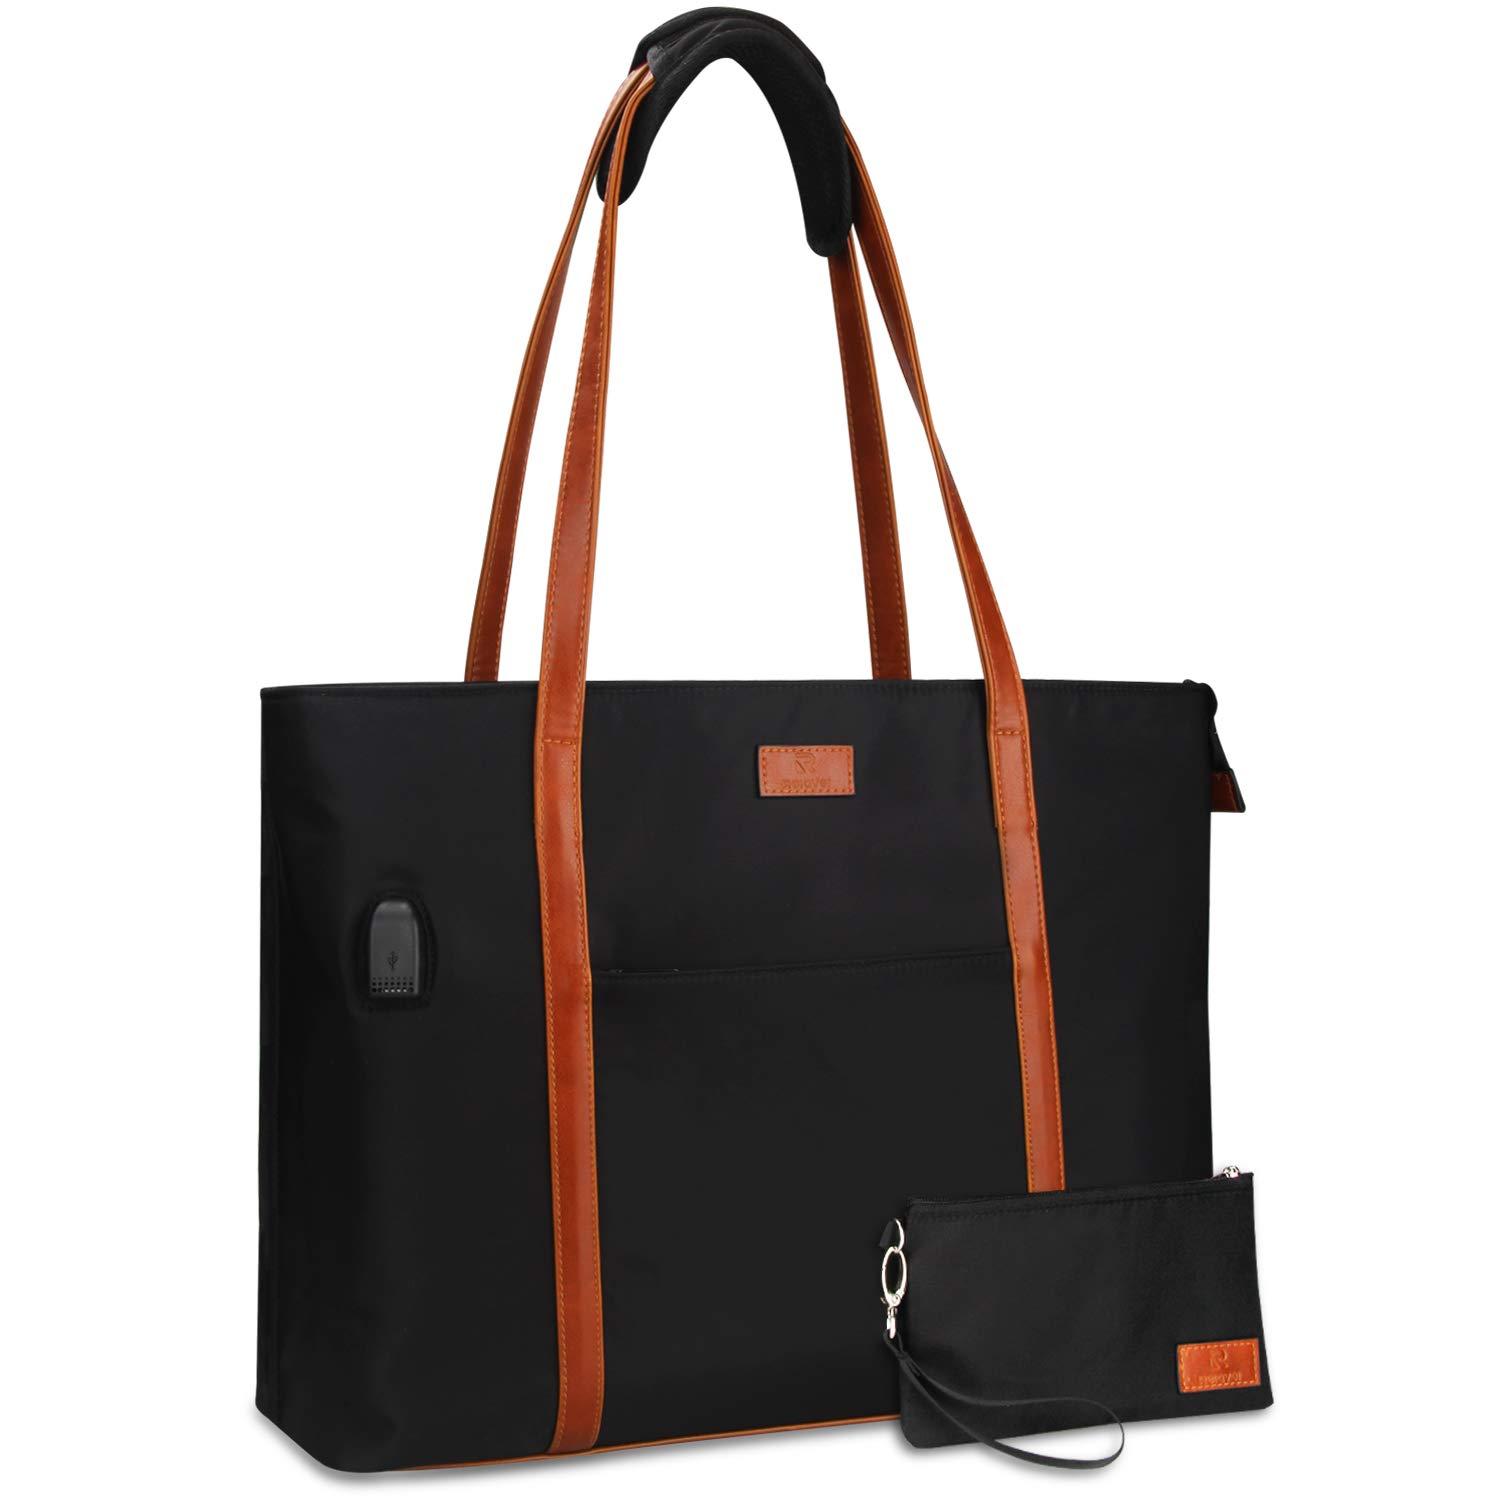 Laptop Tote Bag for Women Teacher Work Office USB Bags Fits 15.6 inches Laptop (Black and Brown Strap) by Relavel